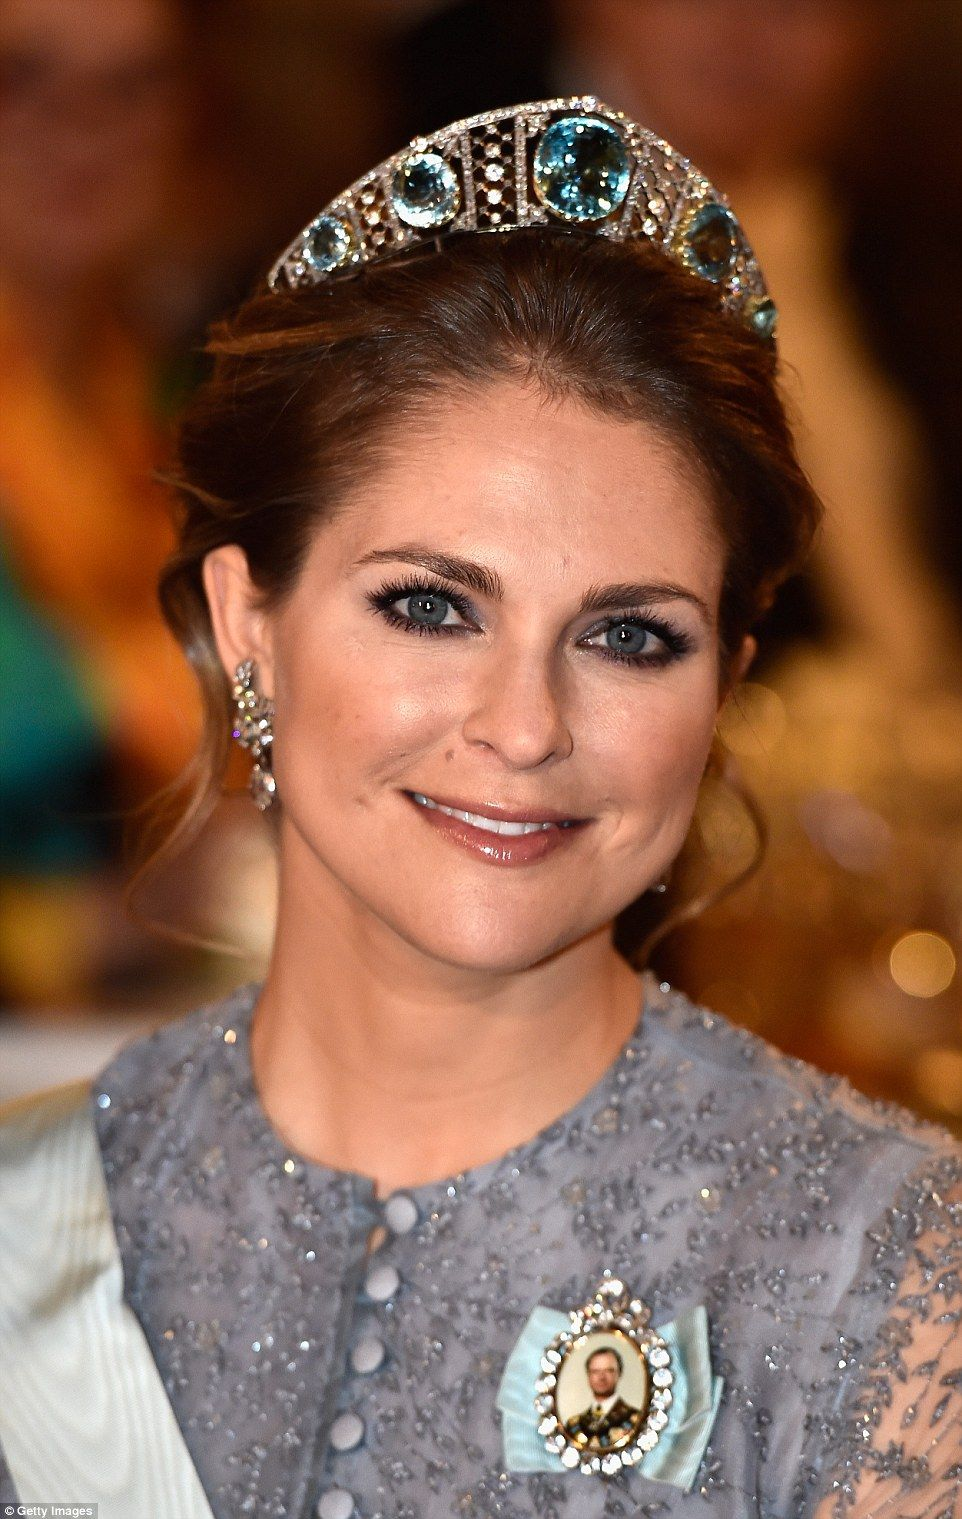 Princess Madeleine smiles for the camera in natural makeup and a chic updo to accentuate her domed tiara with the country's rarely seen Aquamarine Koloshnik tiara